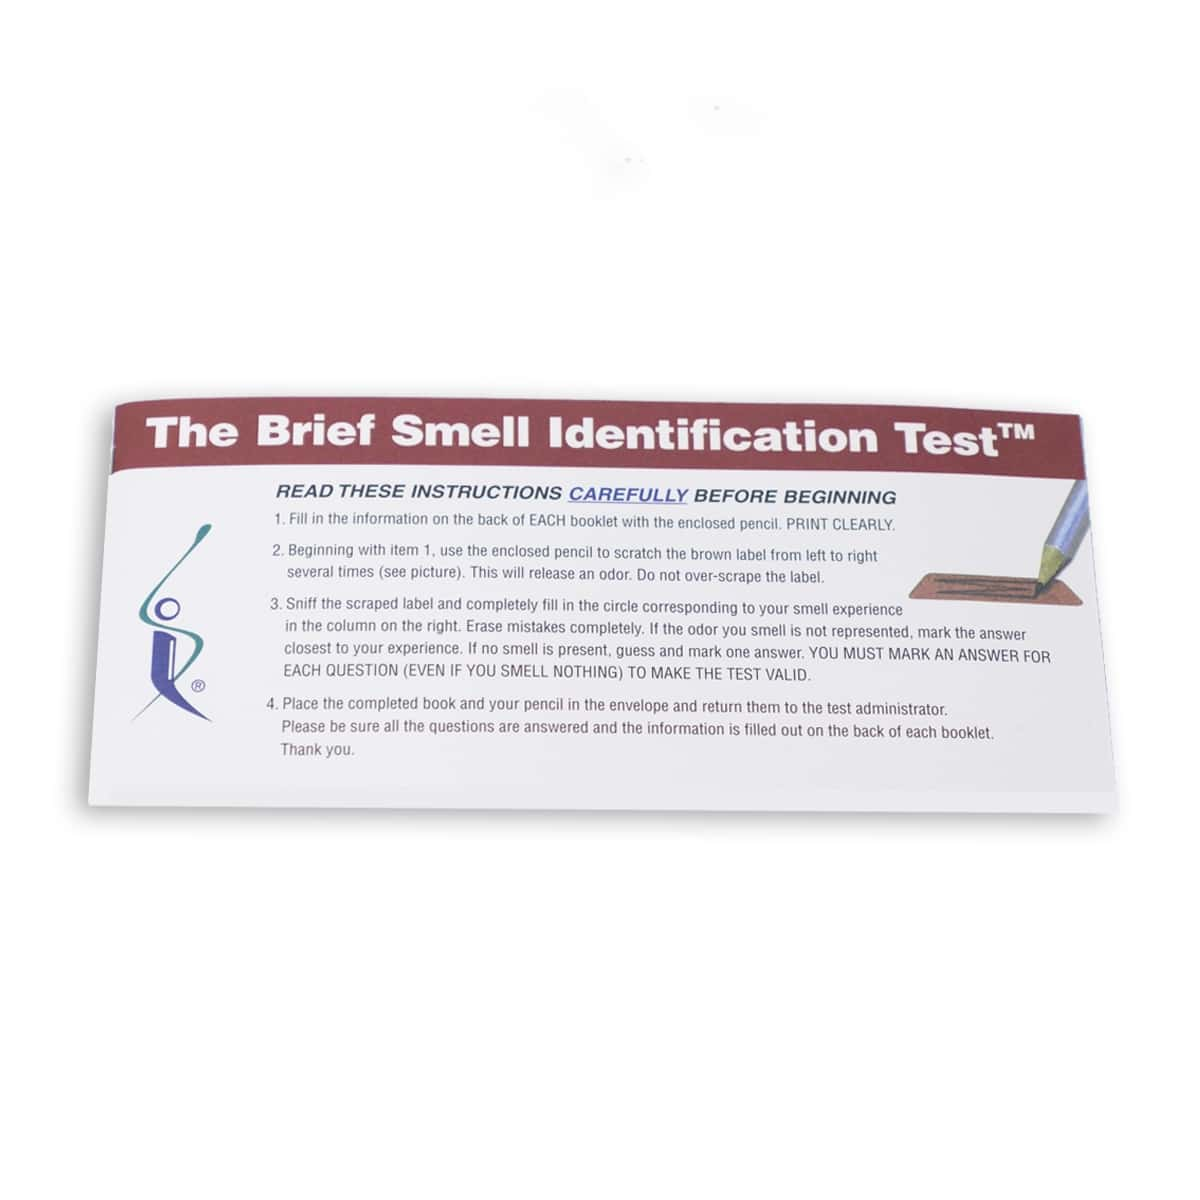 Brief Smell Identification Test Image